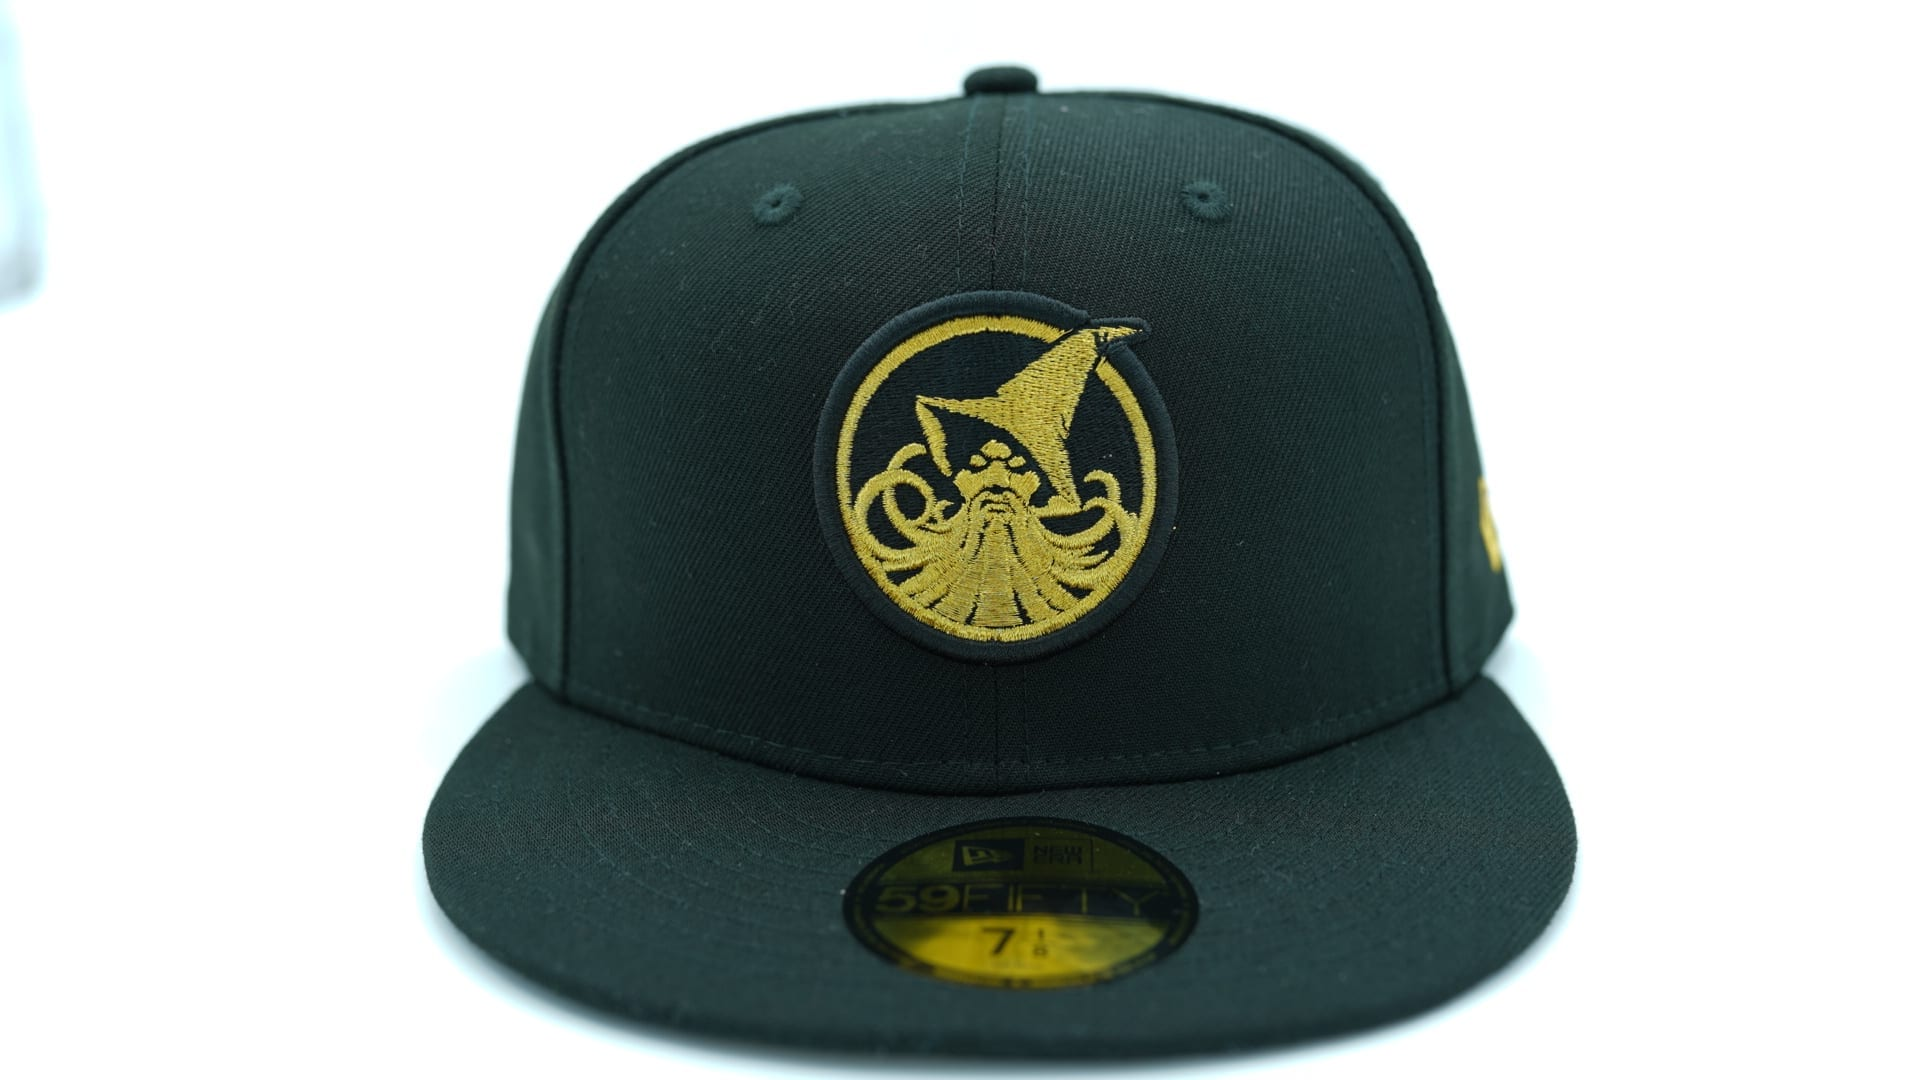 obey x new era icon 59fifty fitted cap strictly fitteds